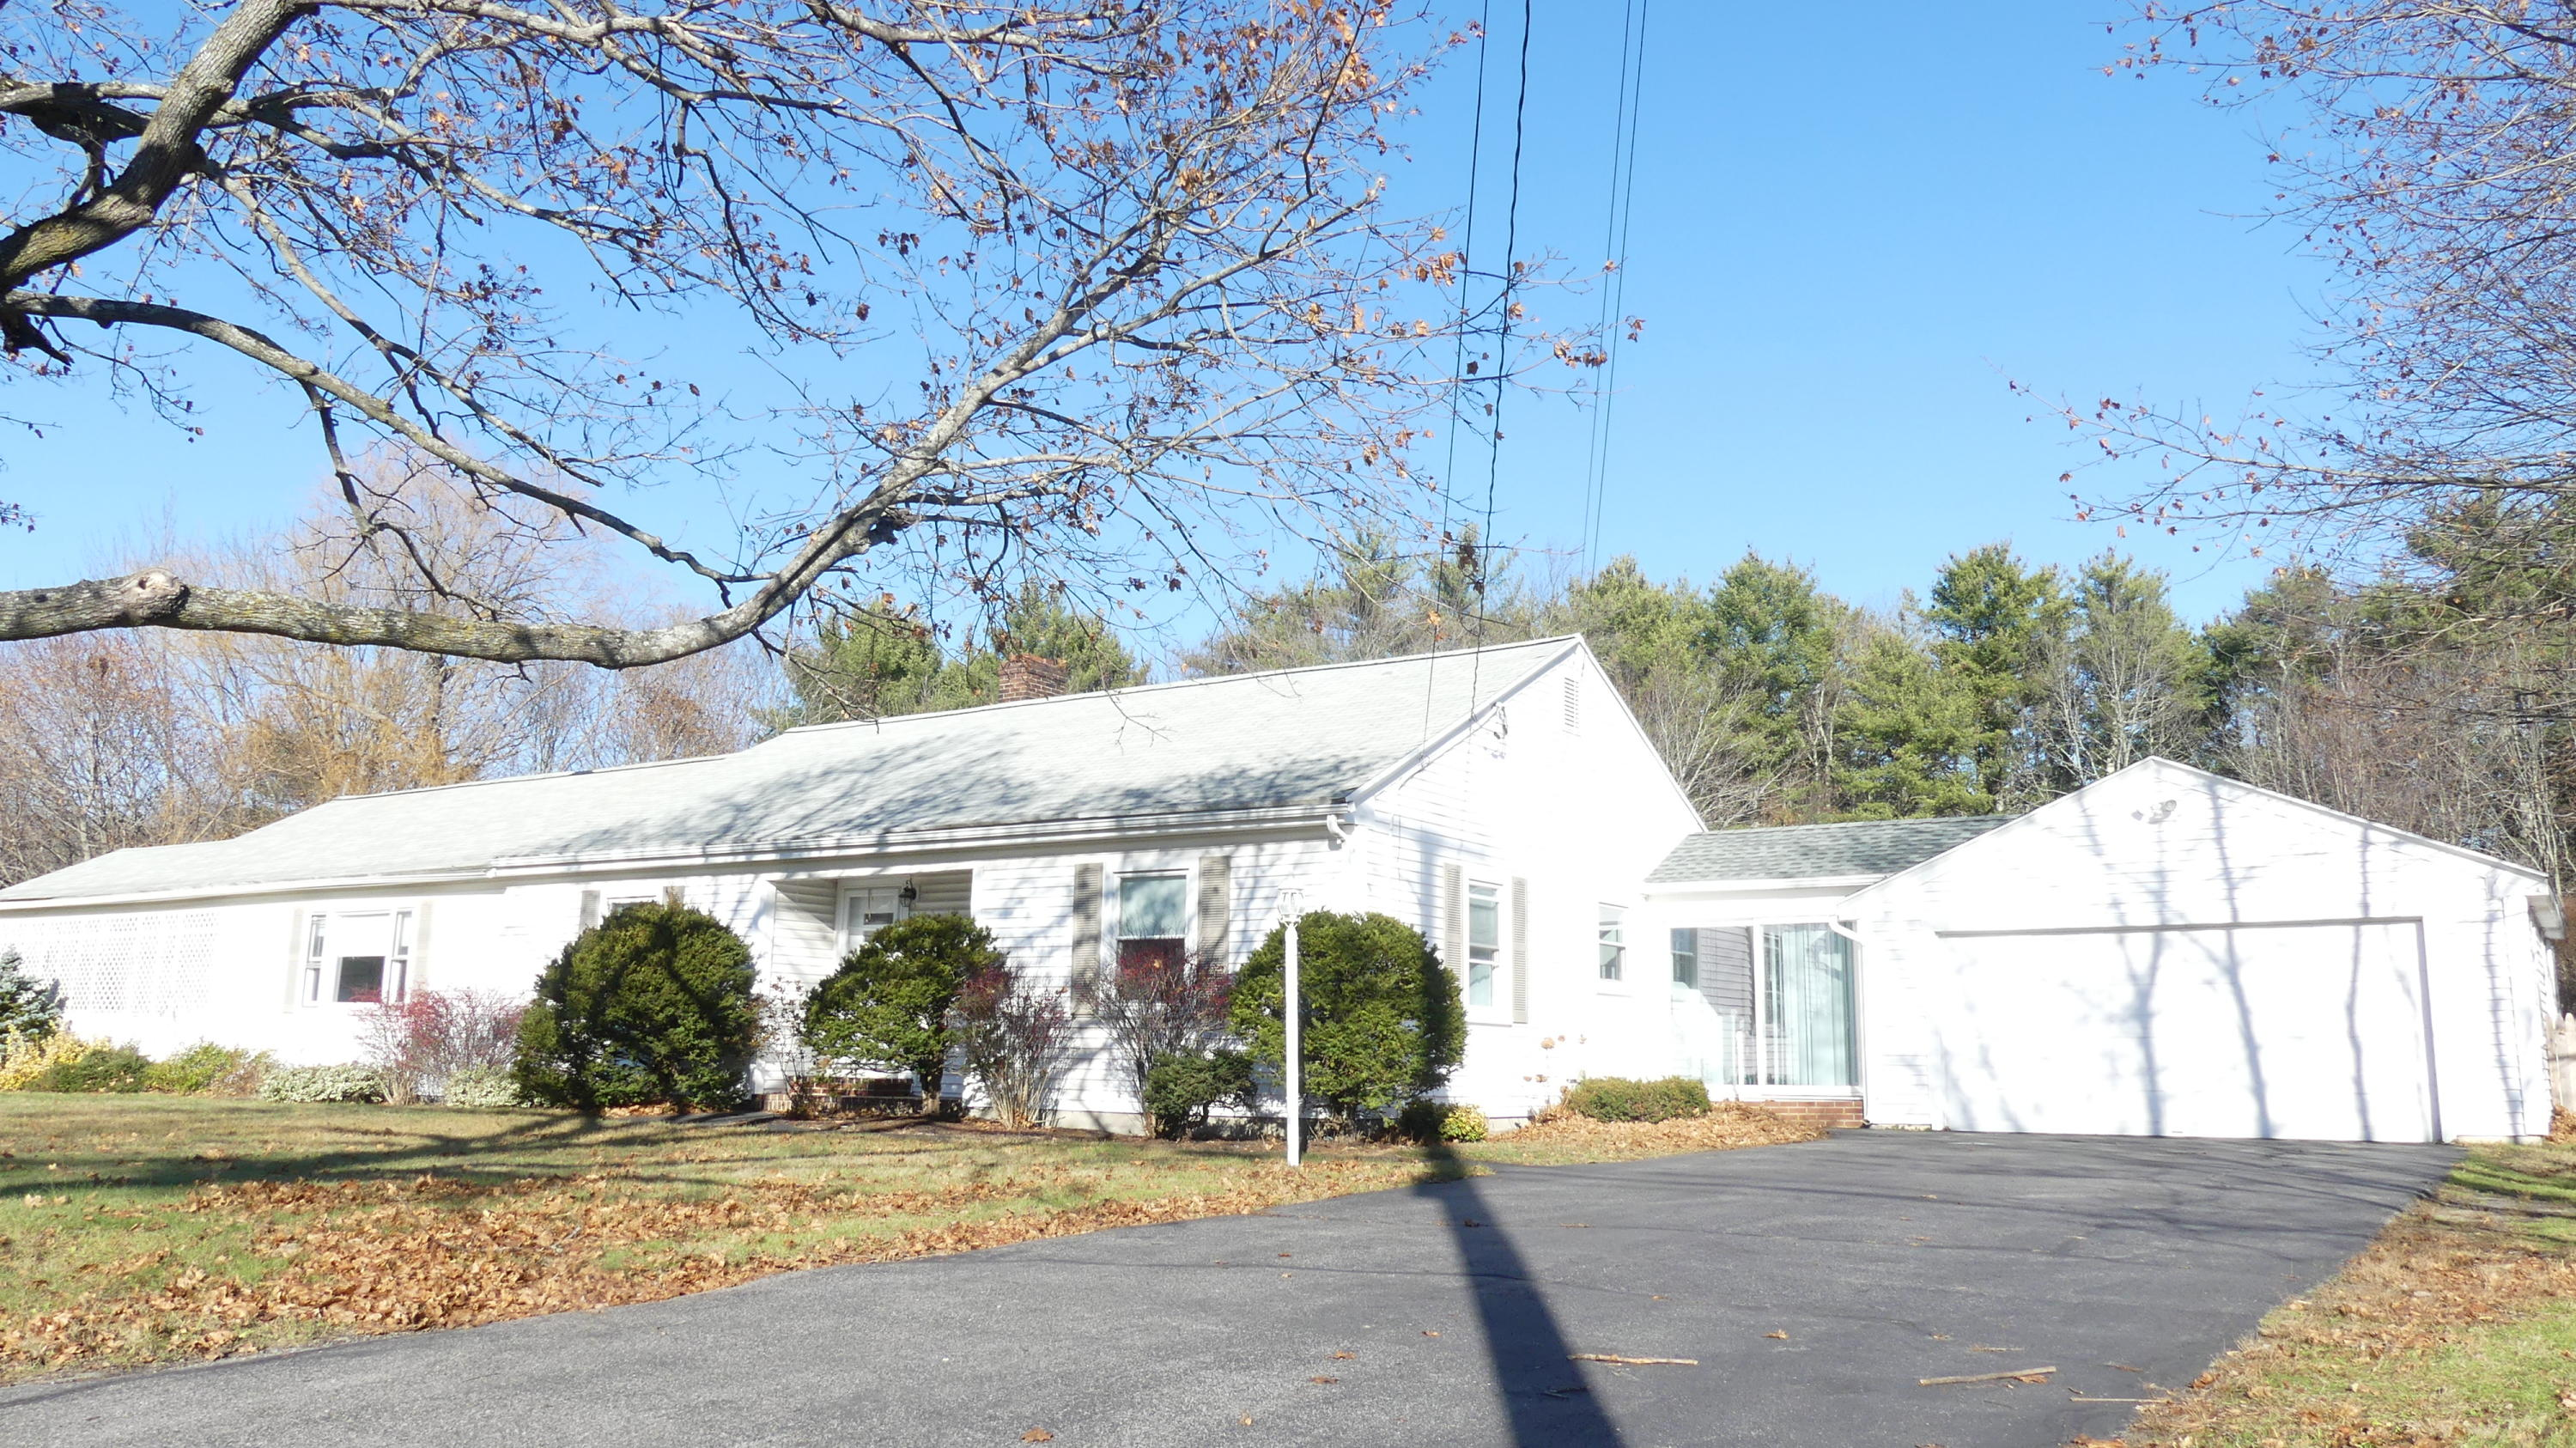 Main image for MLS listing 1477500